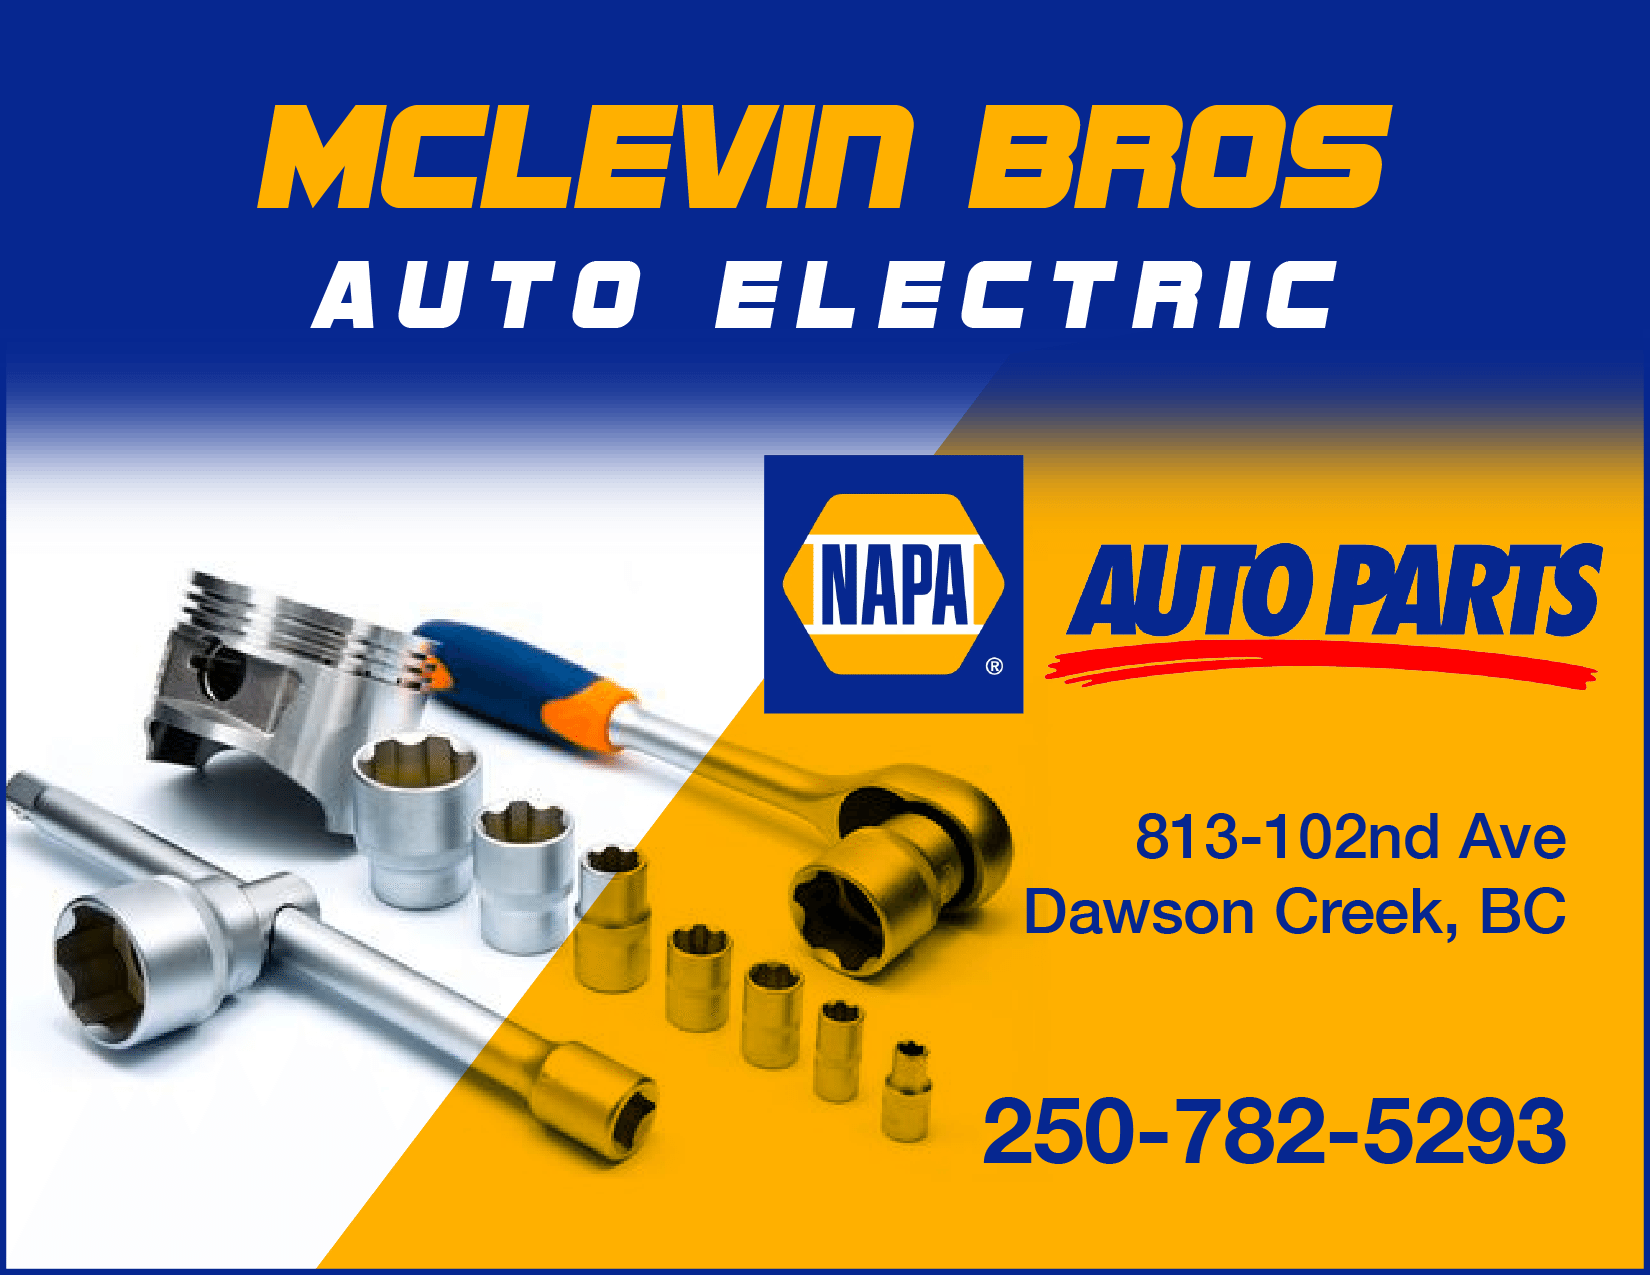 McLevin Bros. Auto Electric Ltd